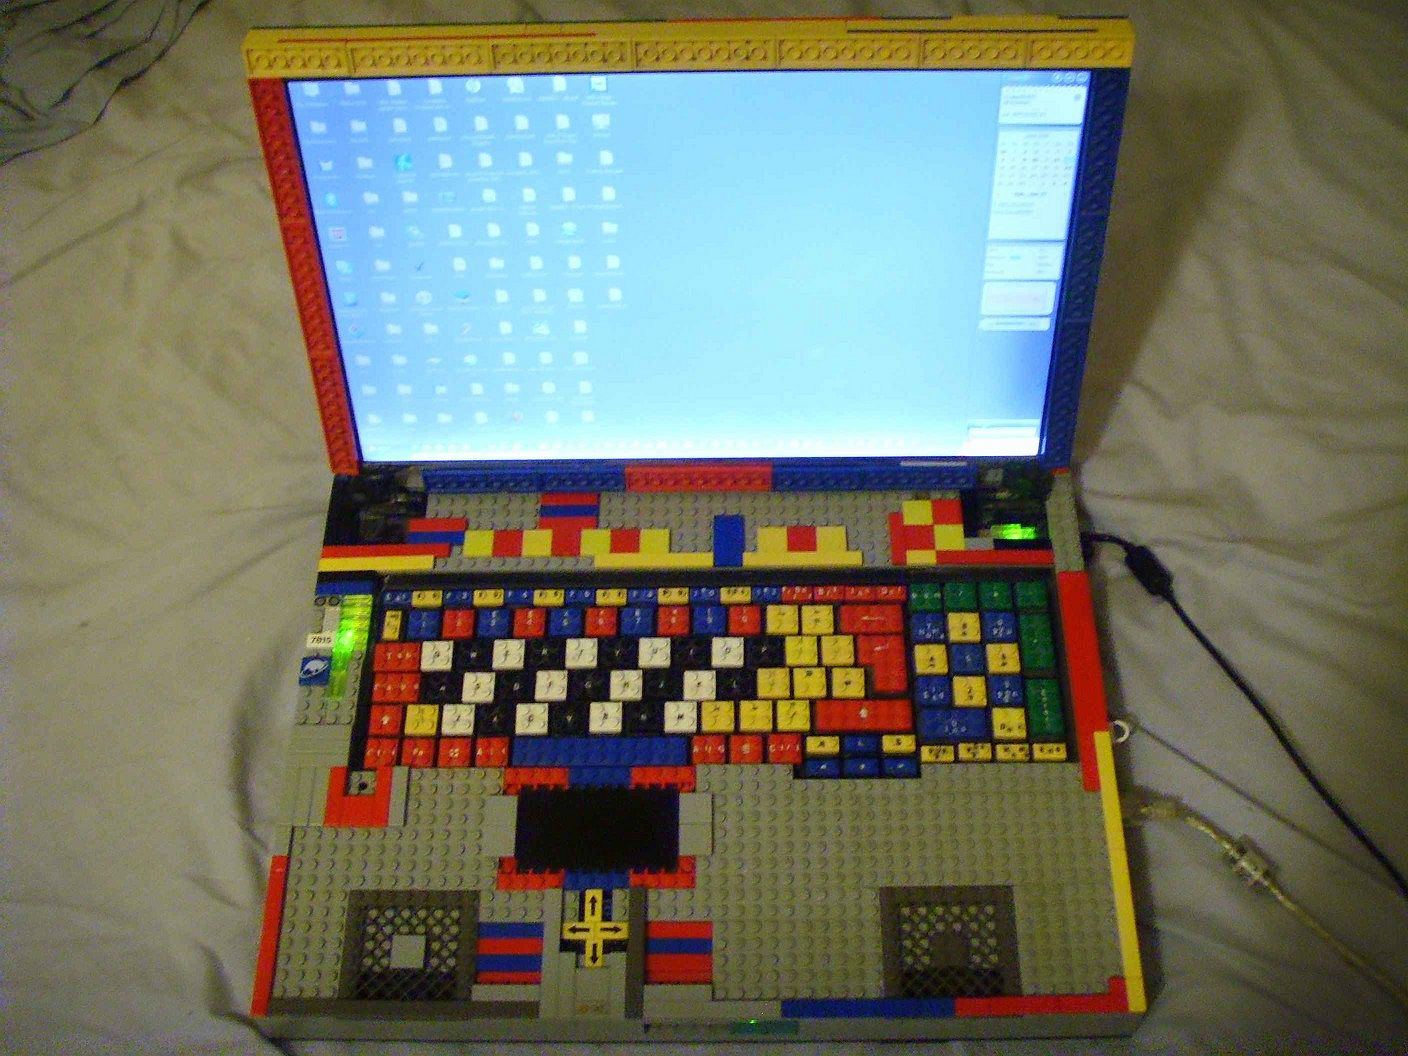 Lego cased Laptop → Iri Tablet Computer with Keyboard Dock Prototype